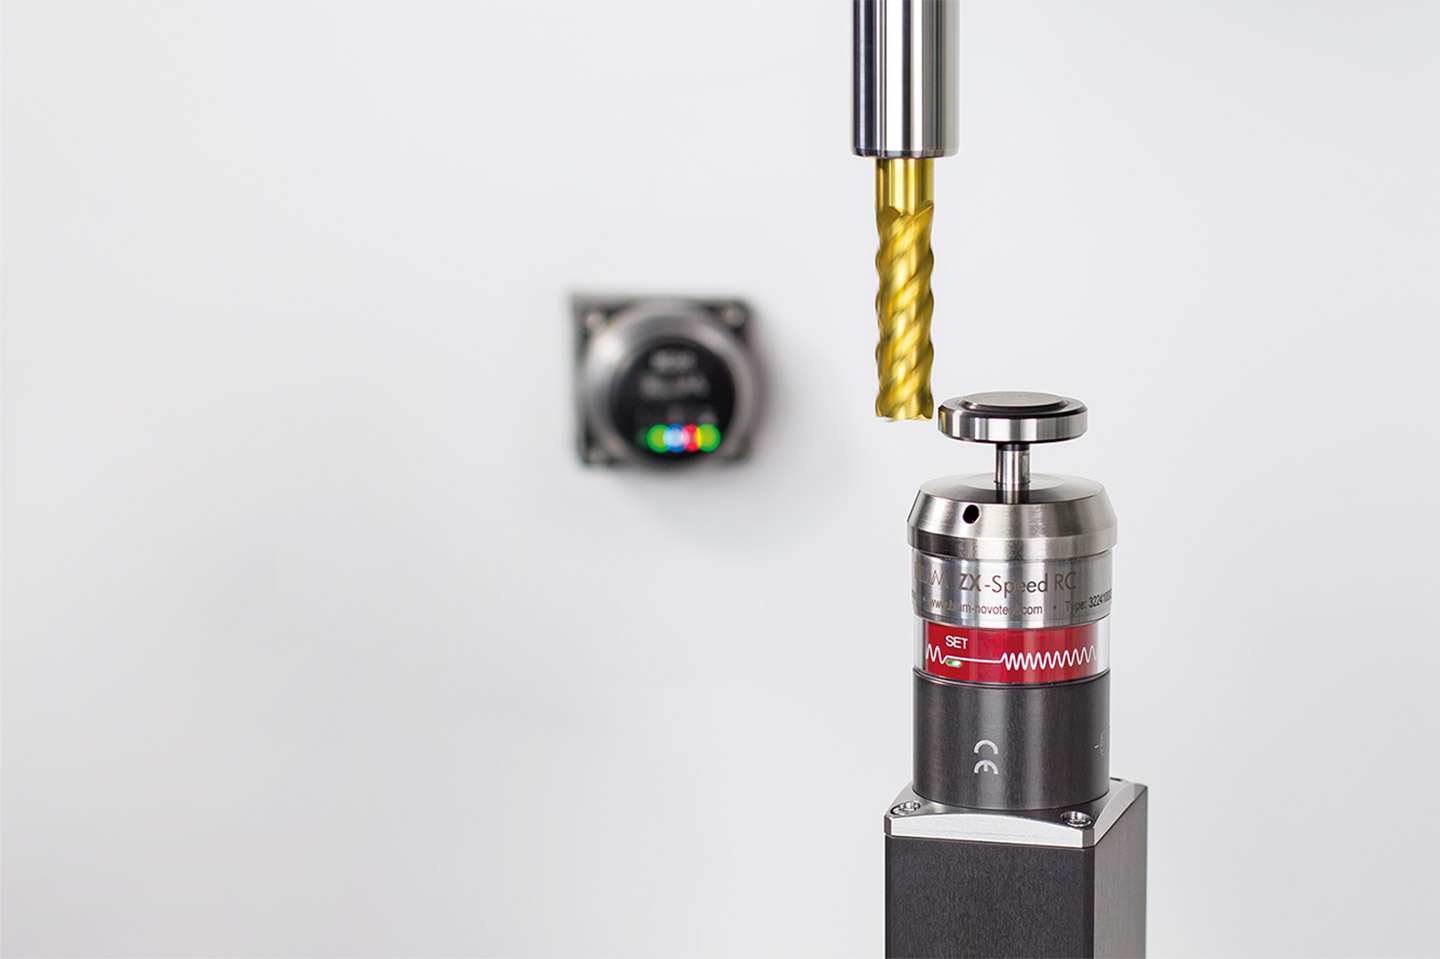 ZX-Speed Series Universal tool setting probes for tool setting and tool breakage monitoring